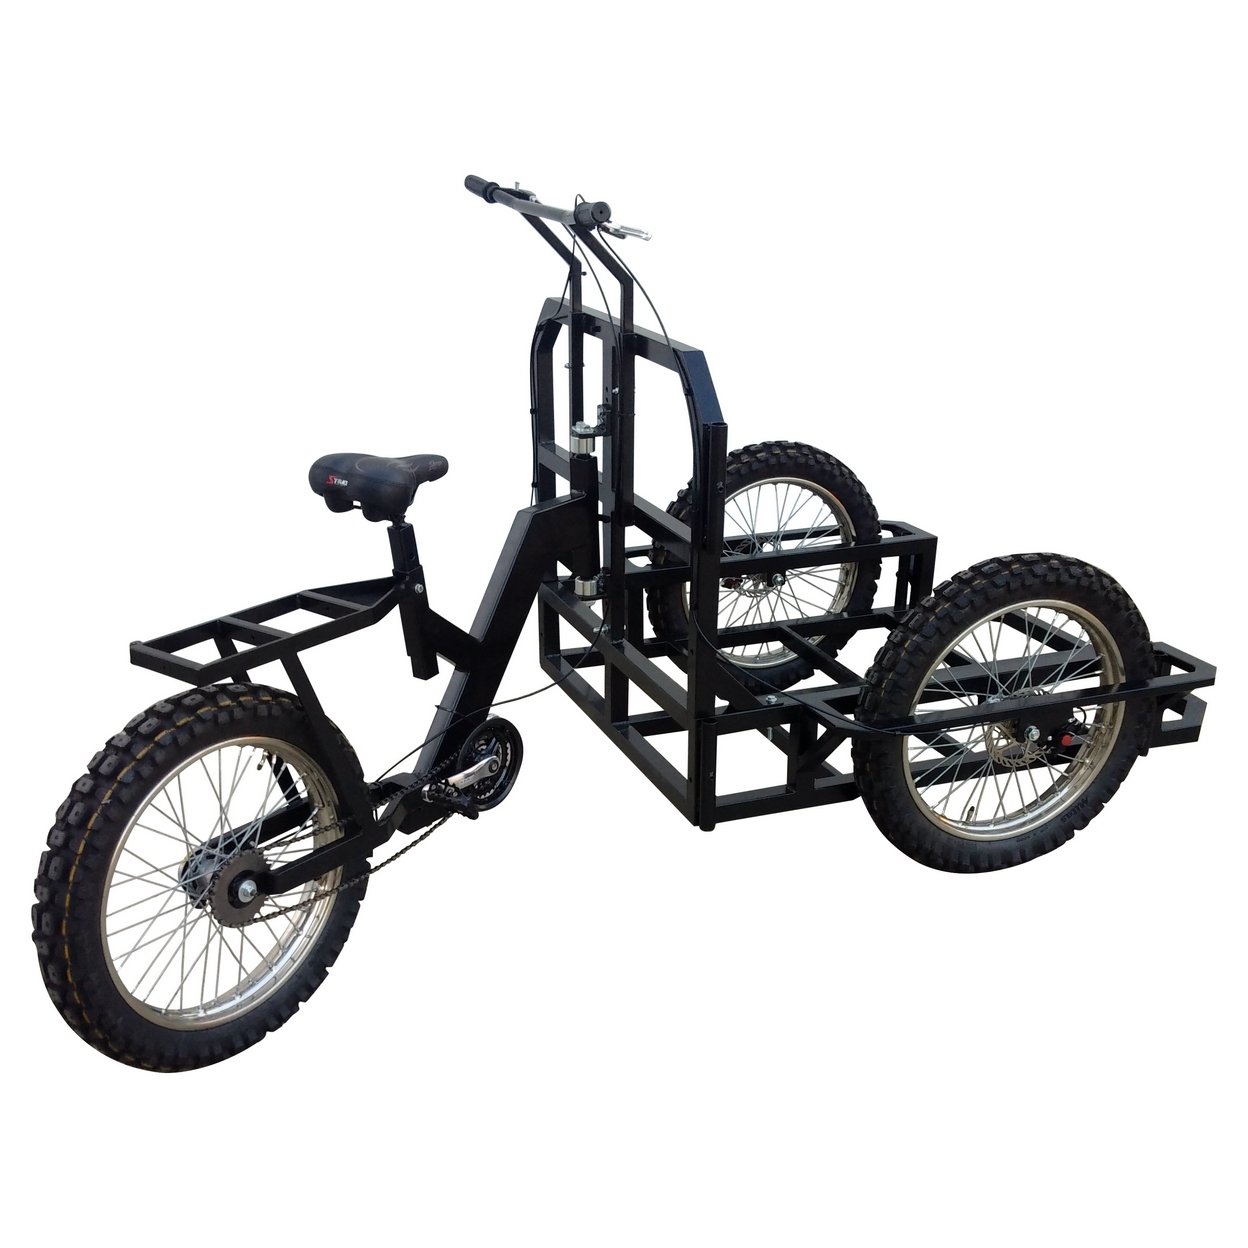 TRICICLO_ATTILA_HEAVY_DUTY_ITALIAN_TRICYCLE_CARGO_BIKE_3